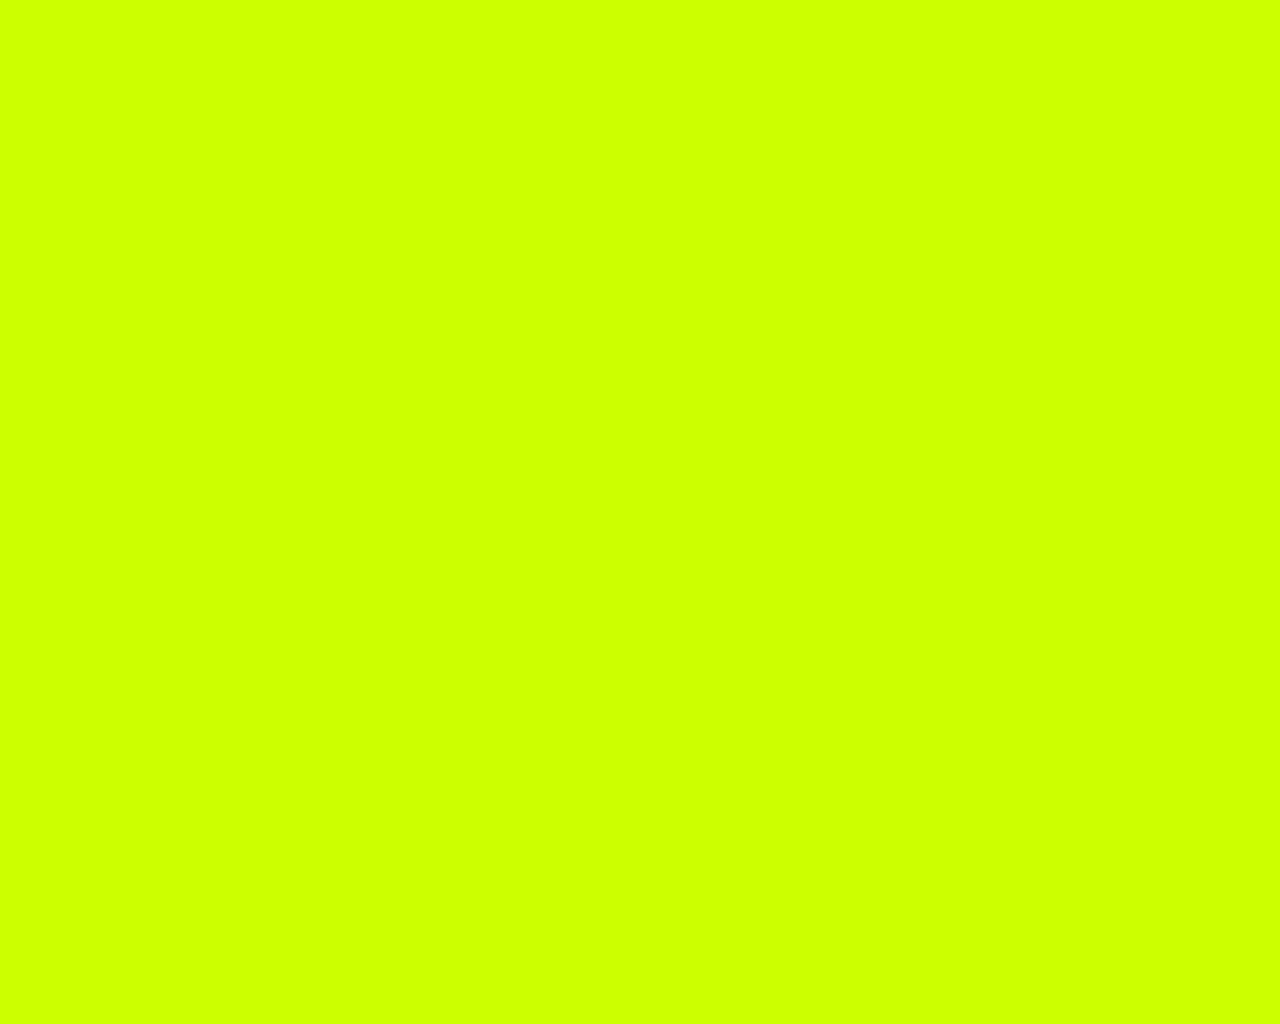 1280x1024 Fluorescent Yellow Solid Color Background